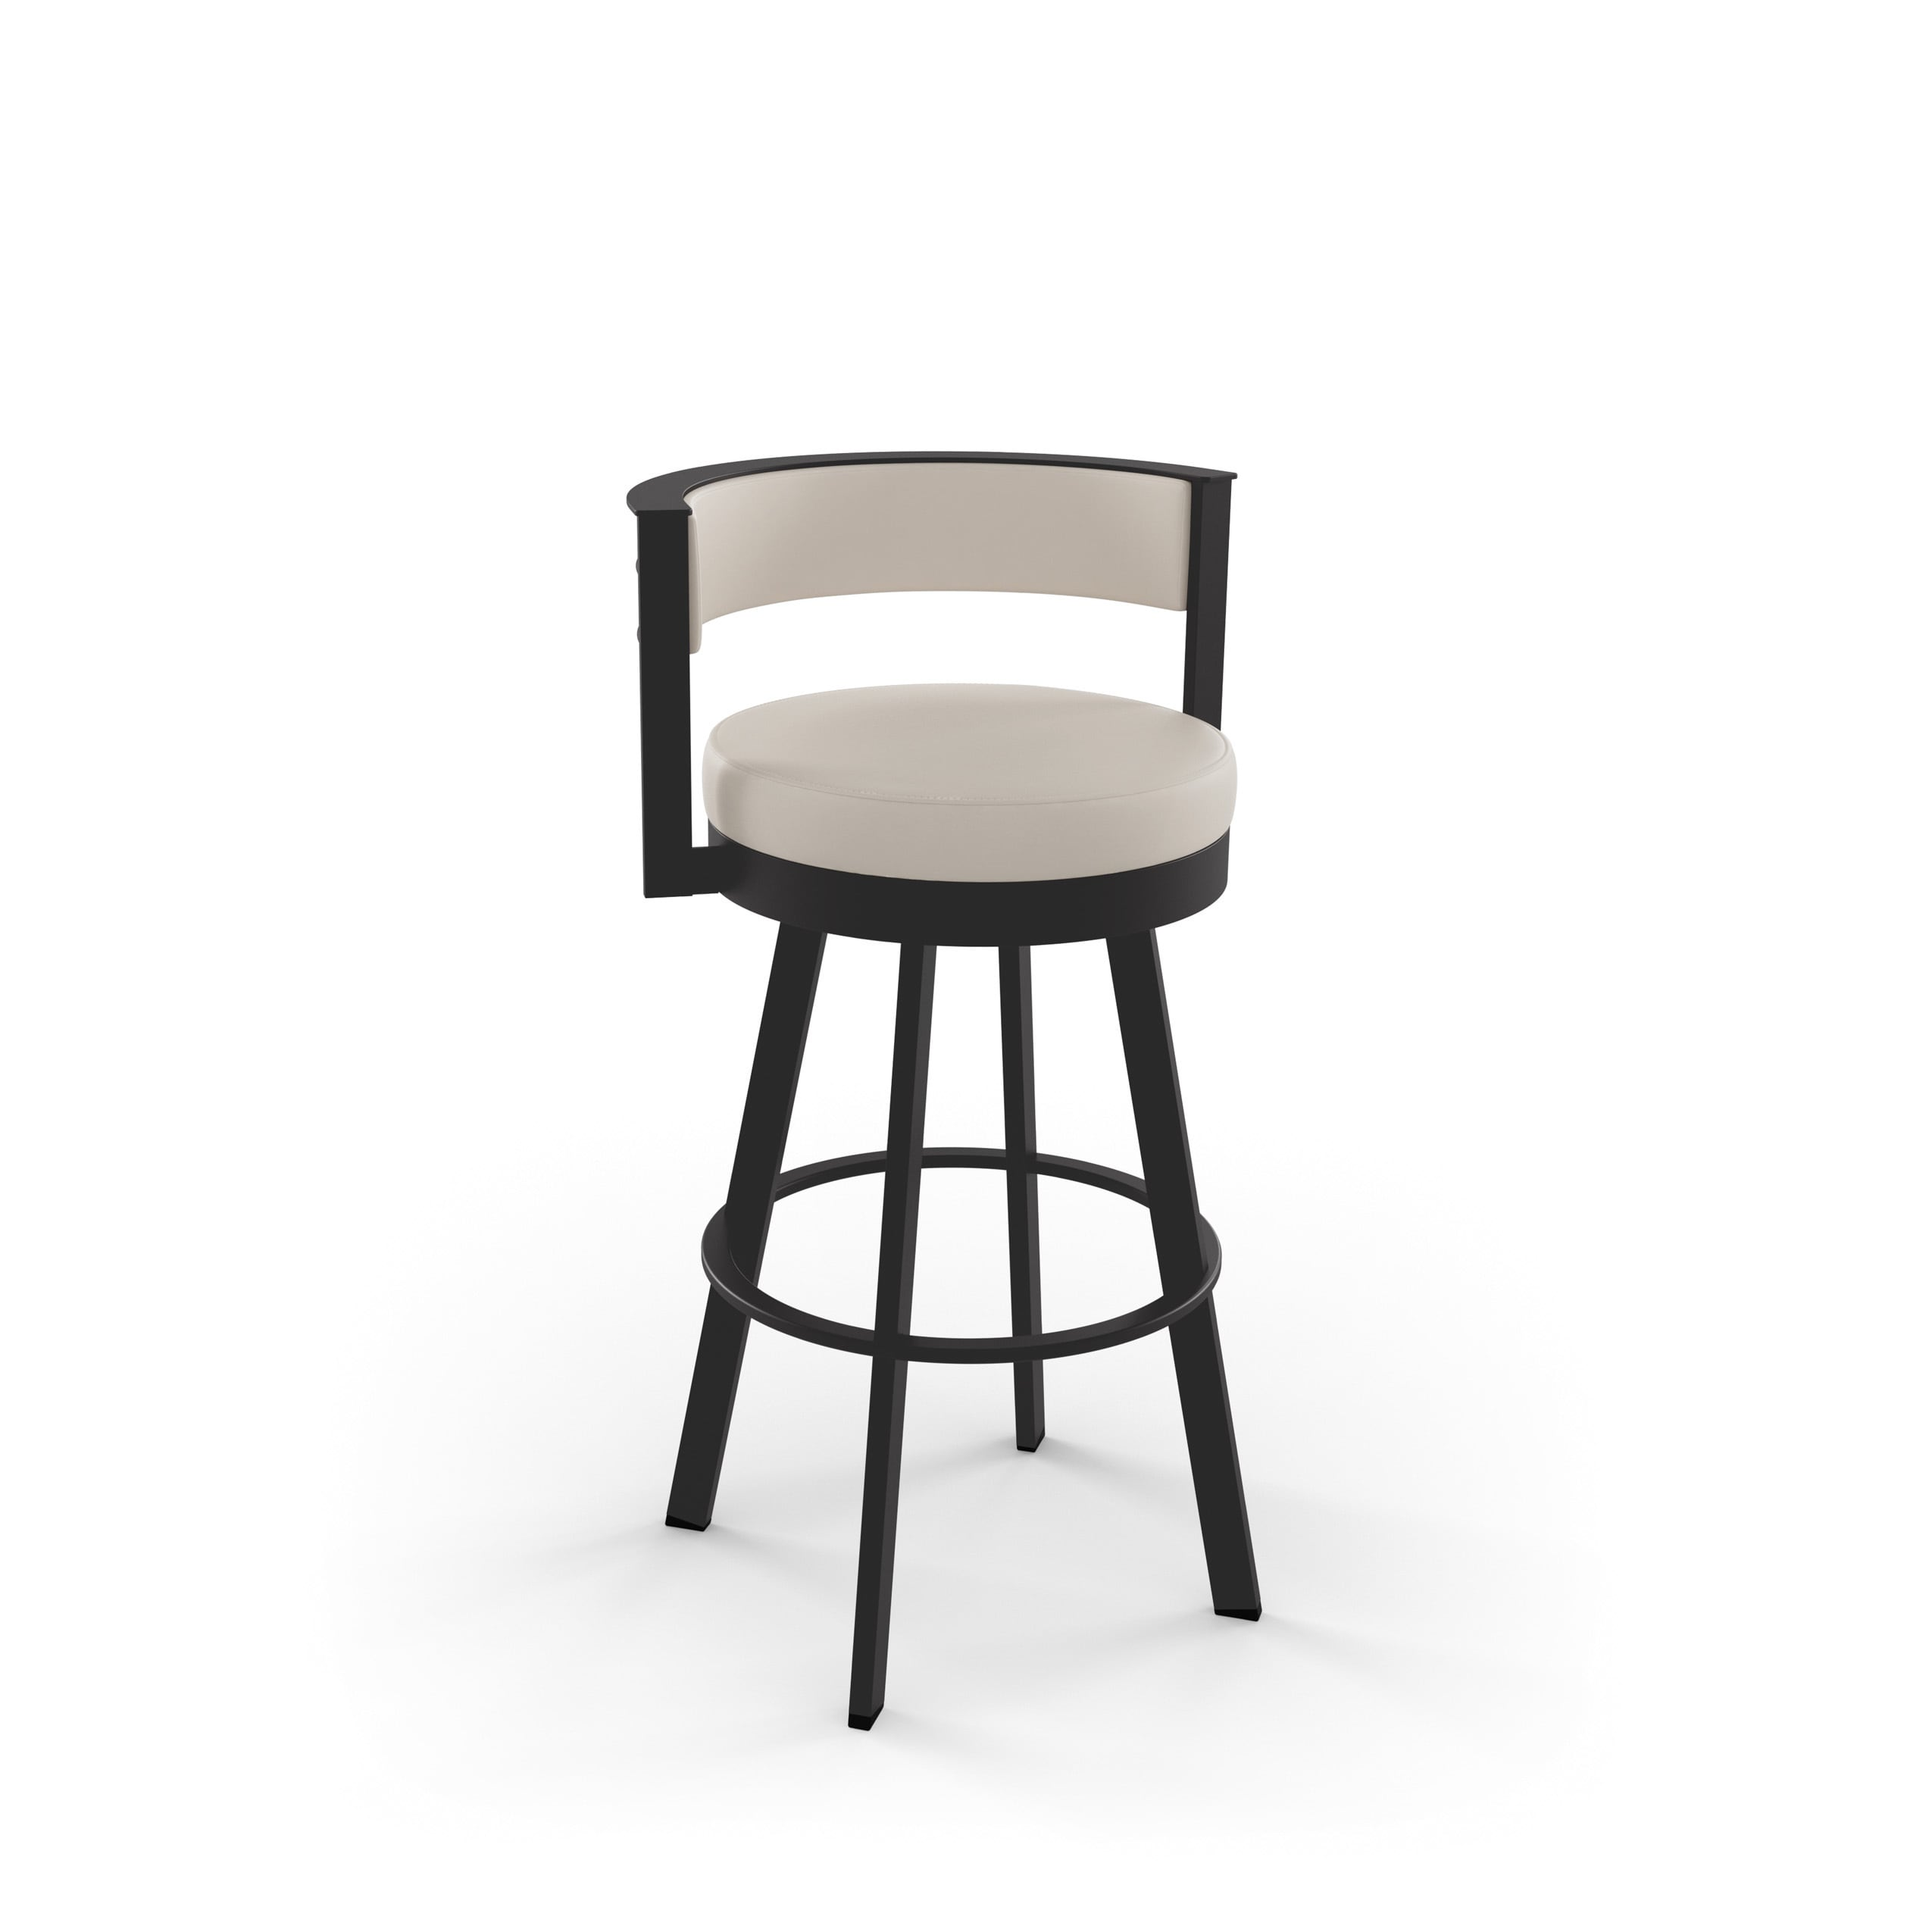 Shop strick bolton klykov 30 inch swivel metal barstool free shipping today overstock com 20254966